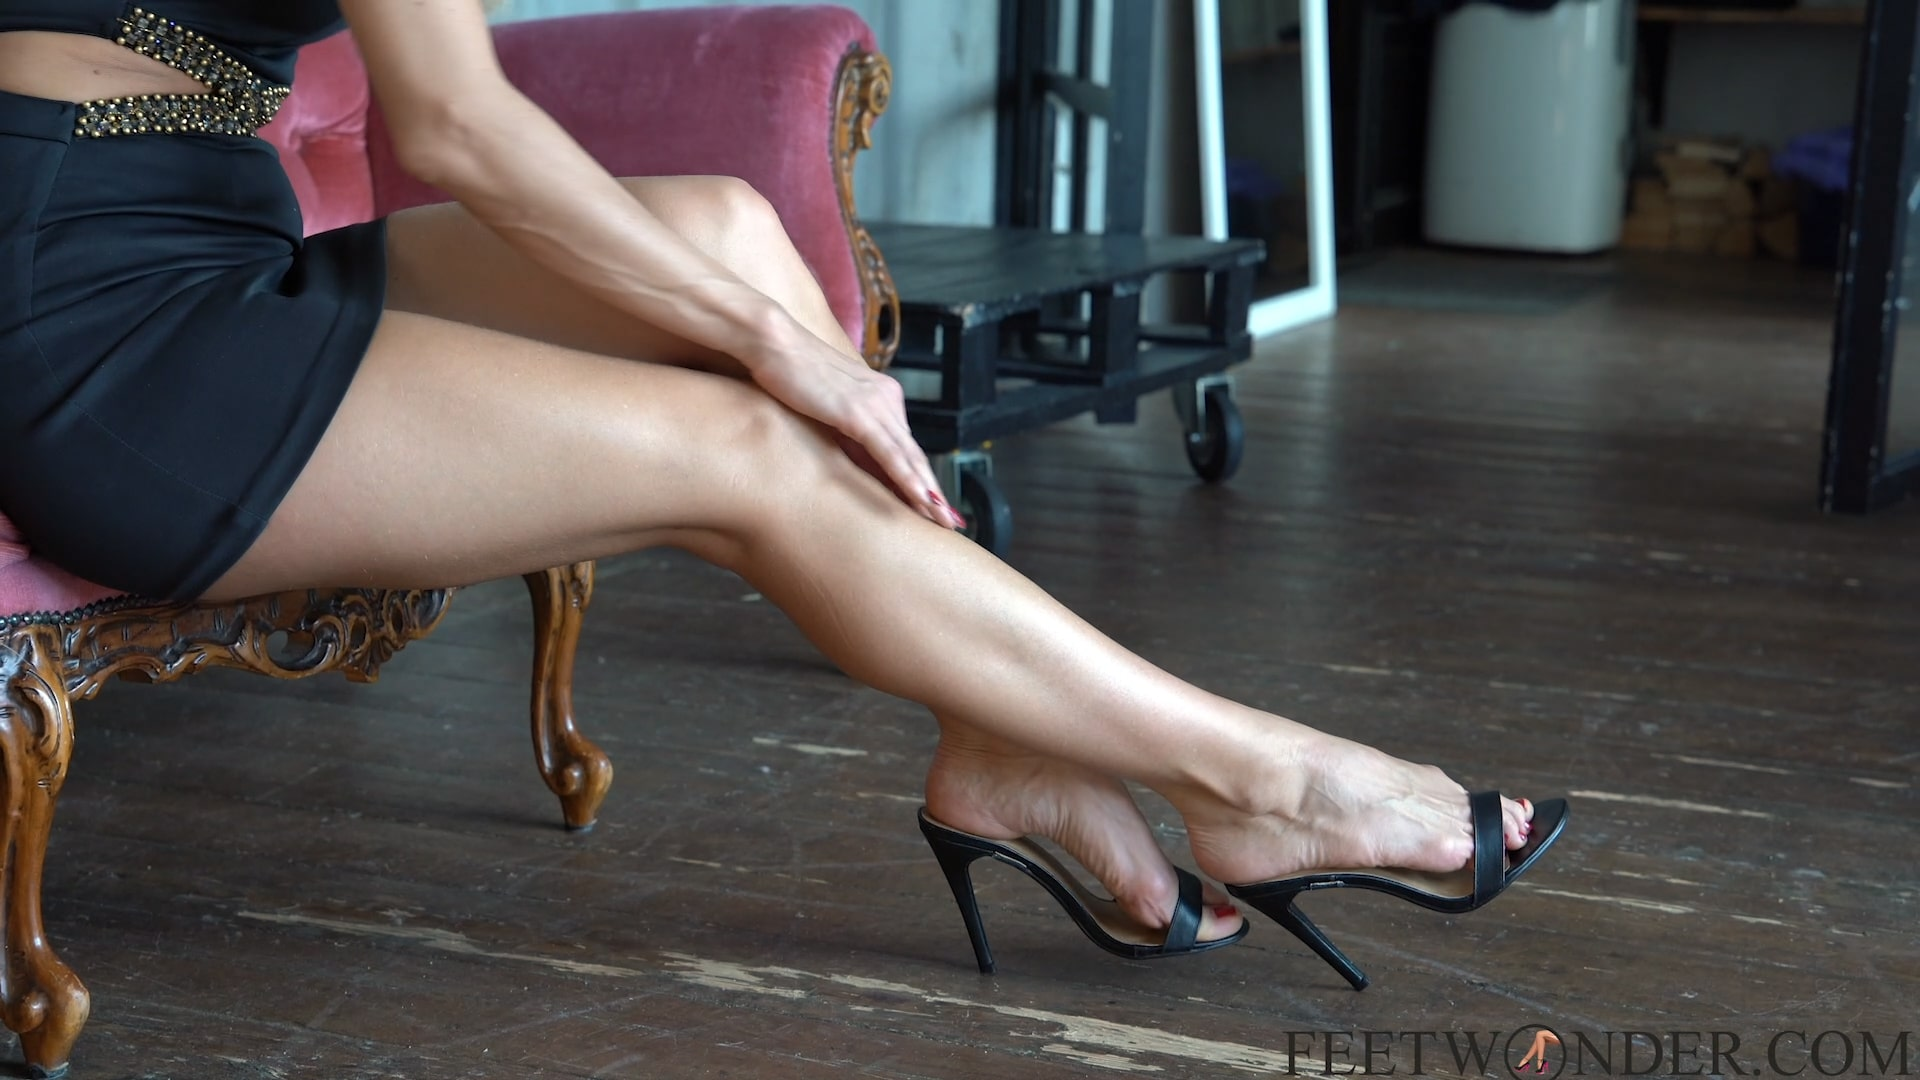 Mature women legs Mature Woman Shows Her Feet Dangles And Crosses Her Legs